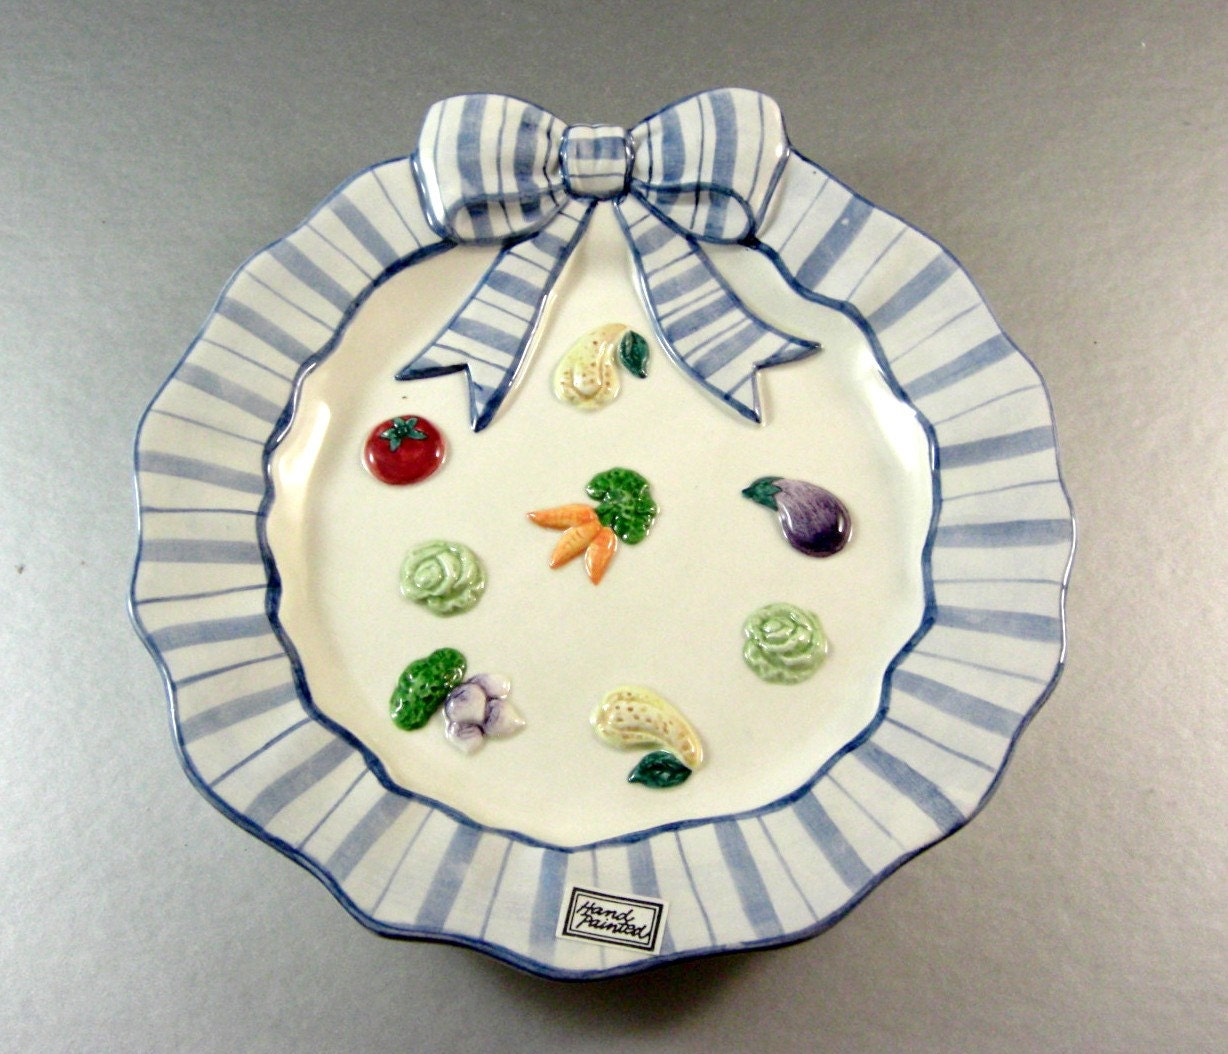 Fitz and floyd petits vegs canape salad sandwich tidbit plate for Fitz and floyd canape plate